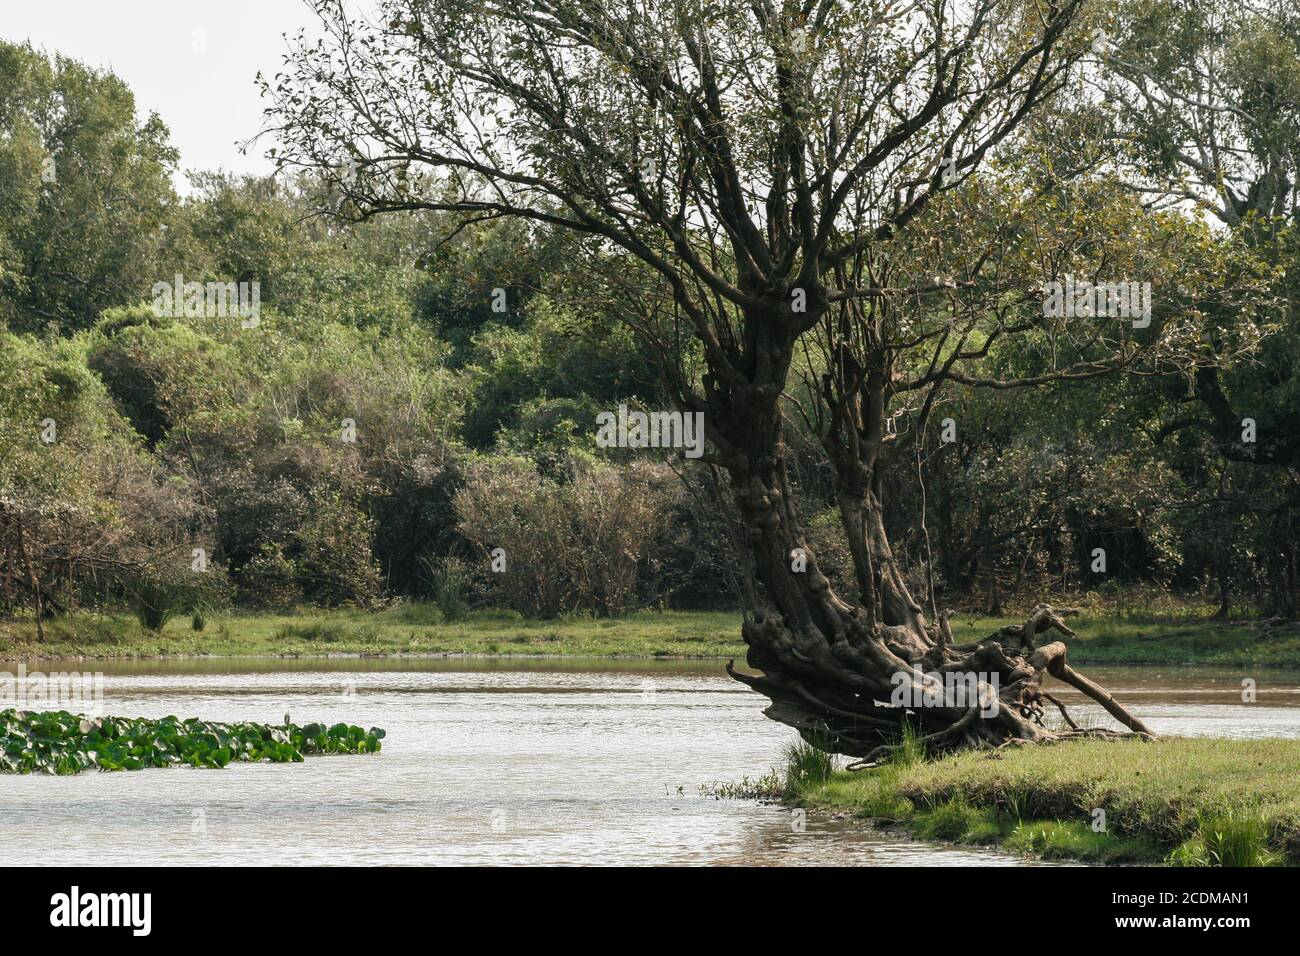 Villa Florida, Paraguay. 9th September, 2007. A general view of twisted and curled tree standing on a riverside along the Tebicuary River on the border of Paraguari and Misiones Department, in the Eastern Region (Region Oriental) of Paraguay. Stock Photo